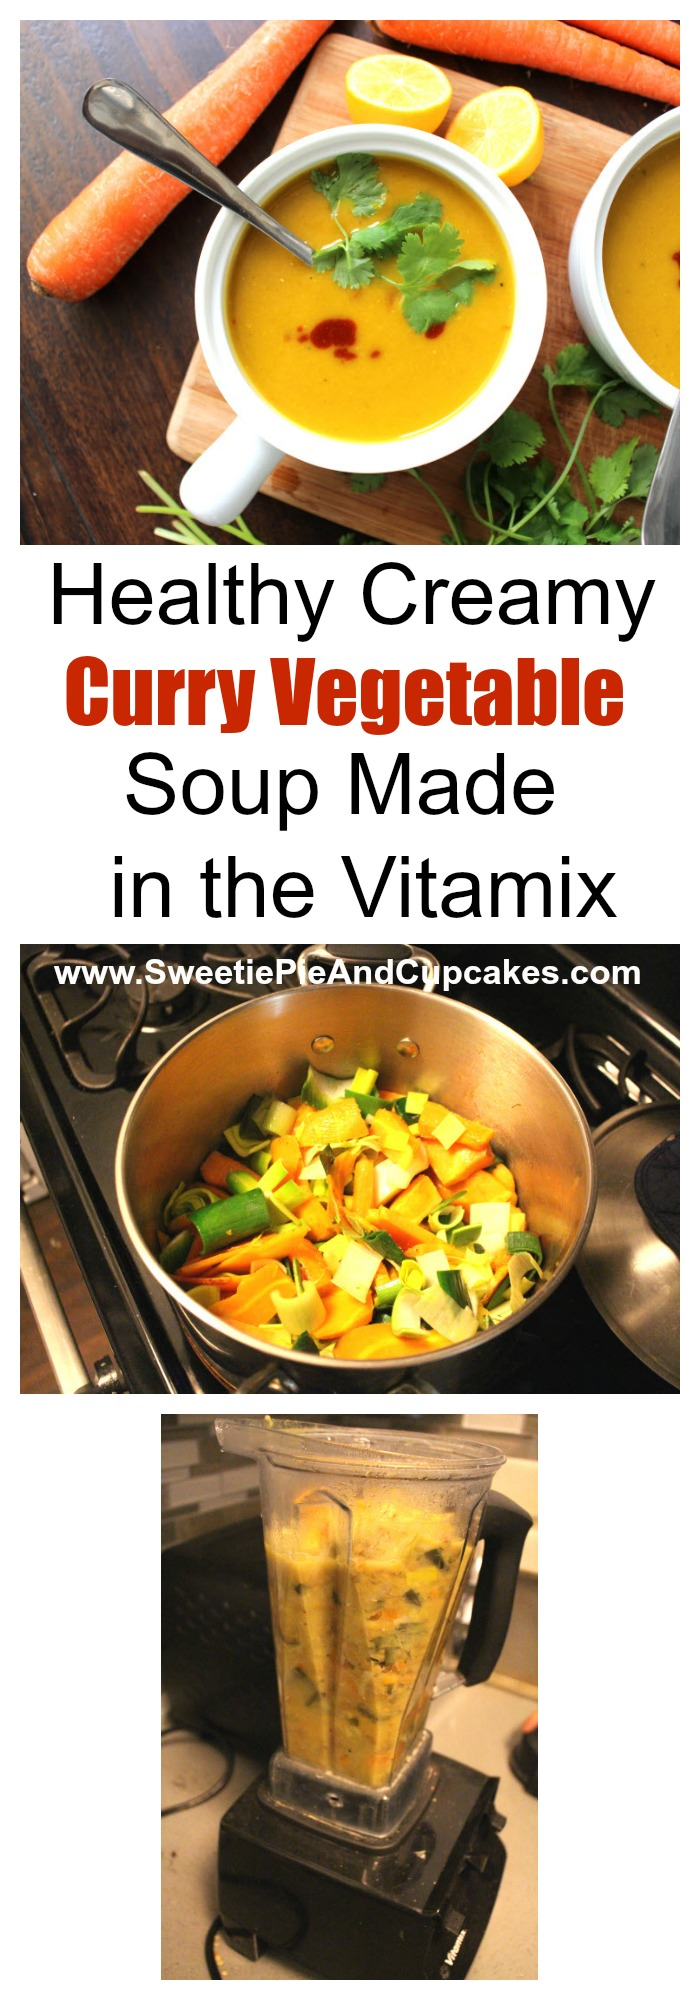 Creamy Curry Vegetable Soup